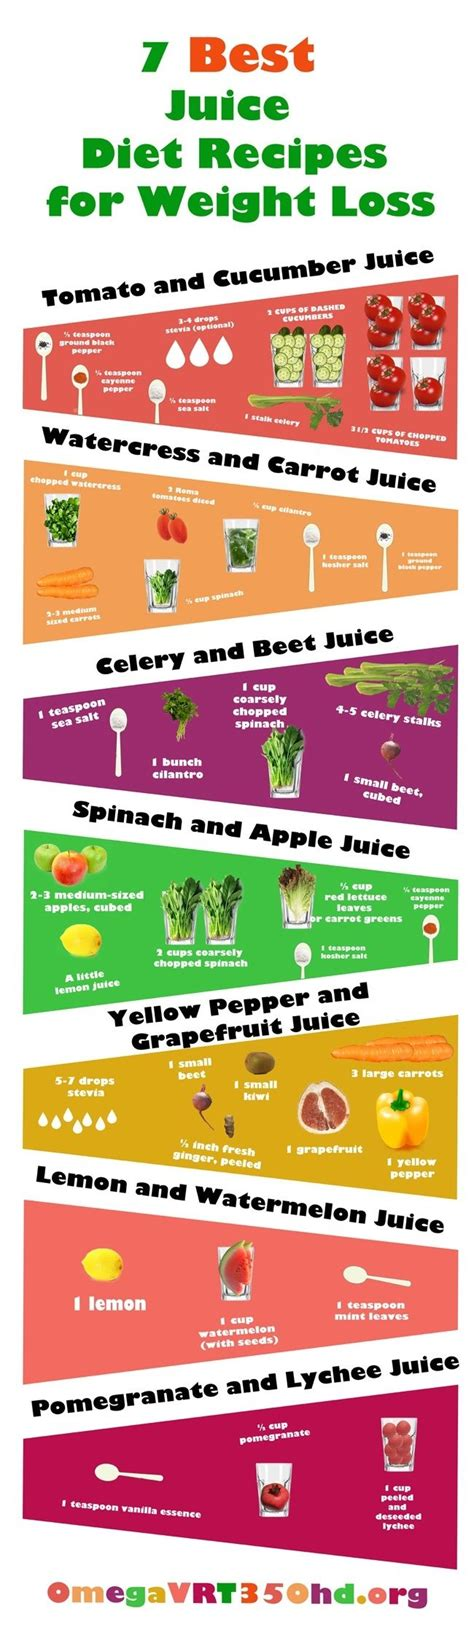 juice loss weight recipes diet juicing infographic tasty simple cleanse detox easy para visual emagrecer drink health sucos fast juices